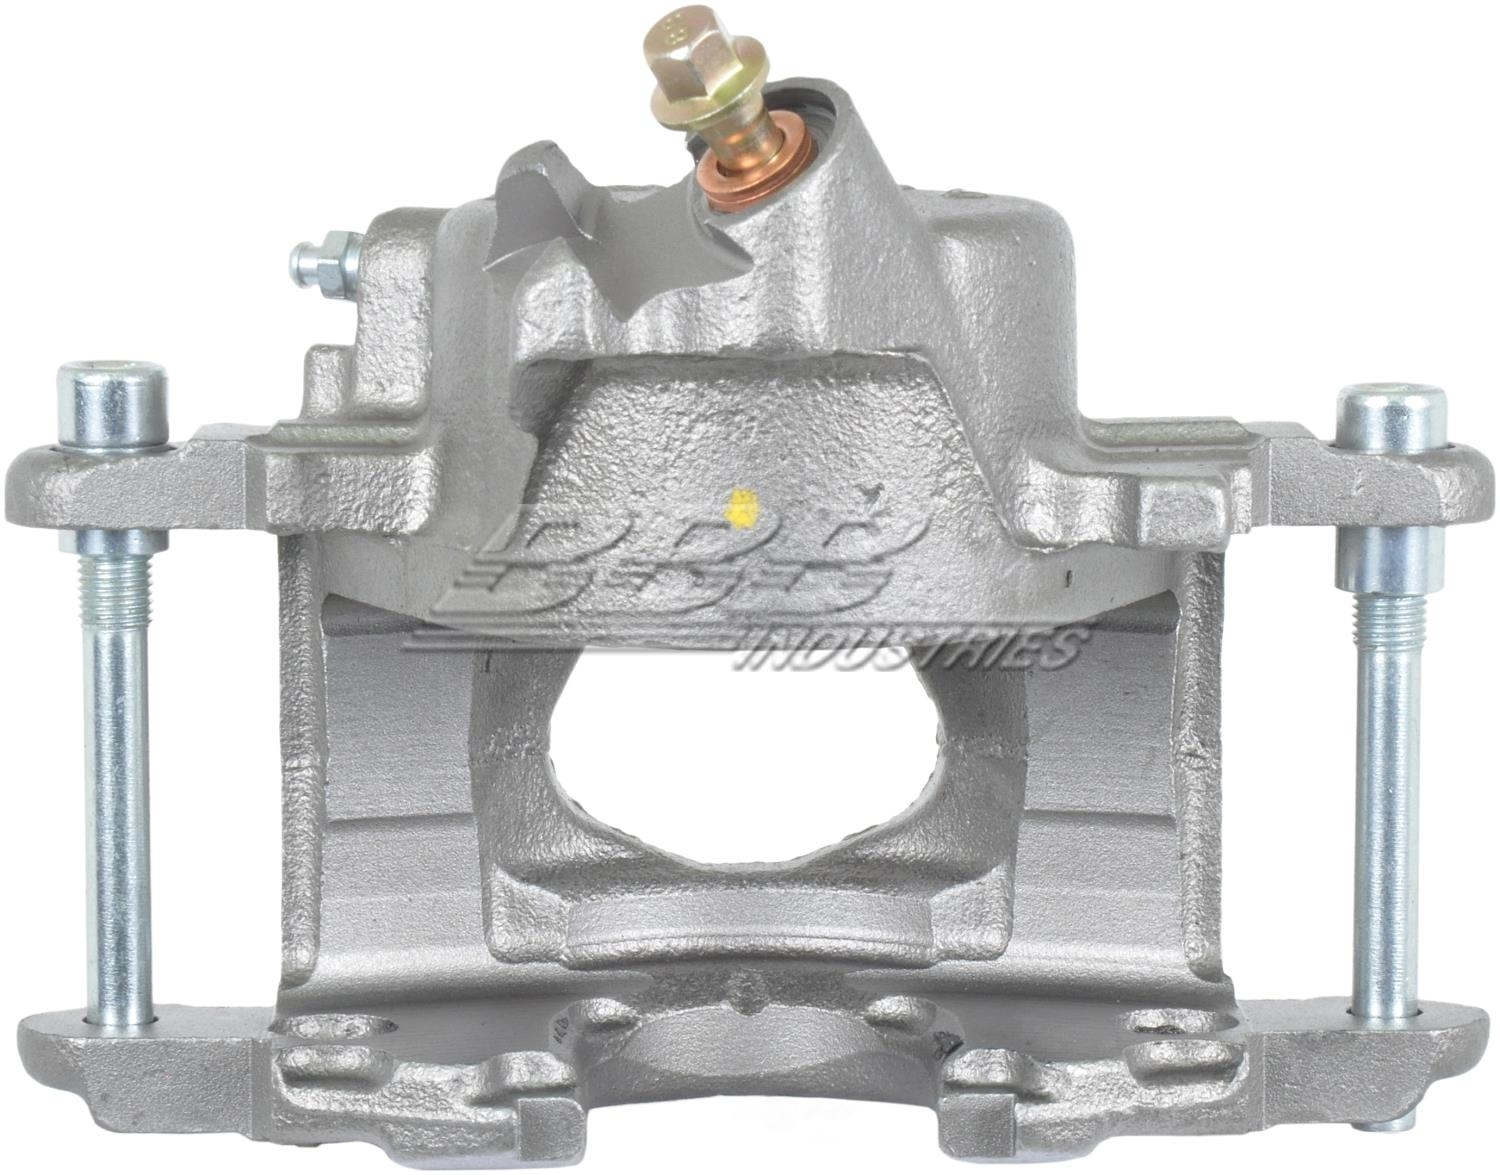 BBB INDUSTRIES - Reman Caliper w/ Installation Hardware - BBA 97-17242A